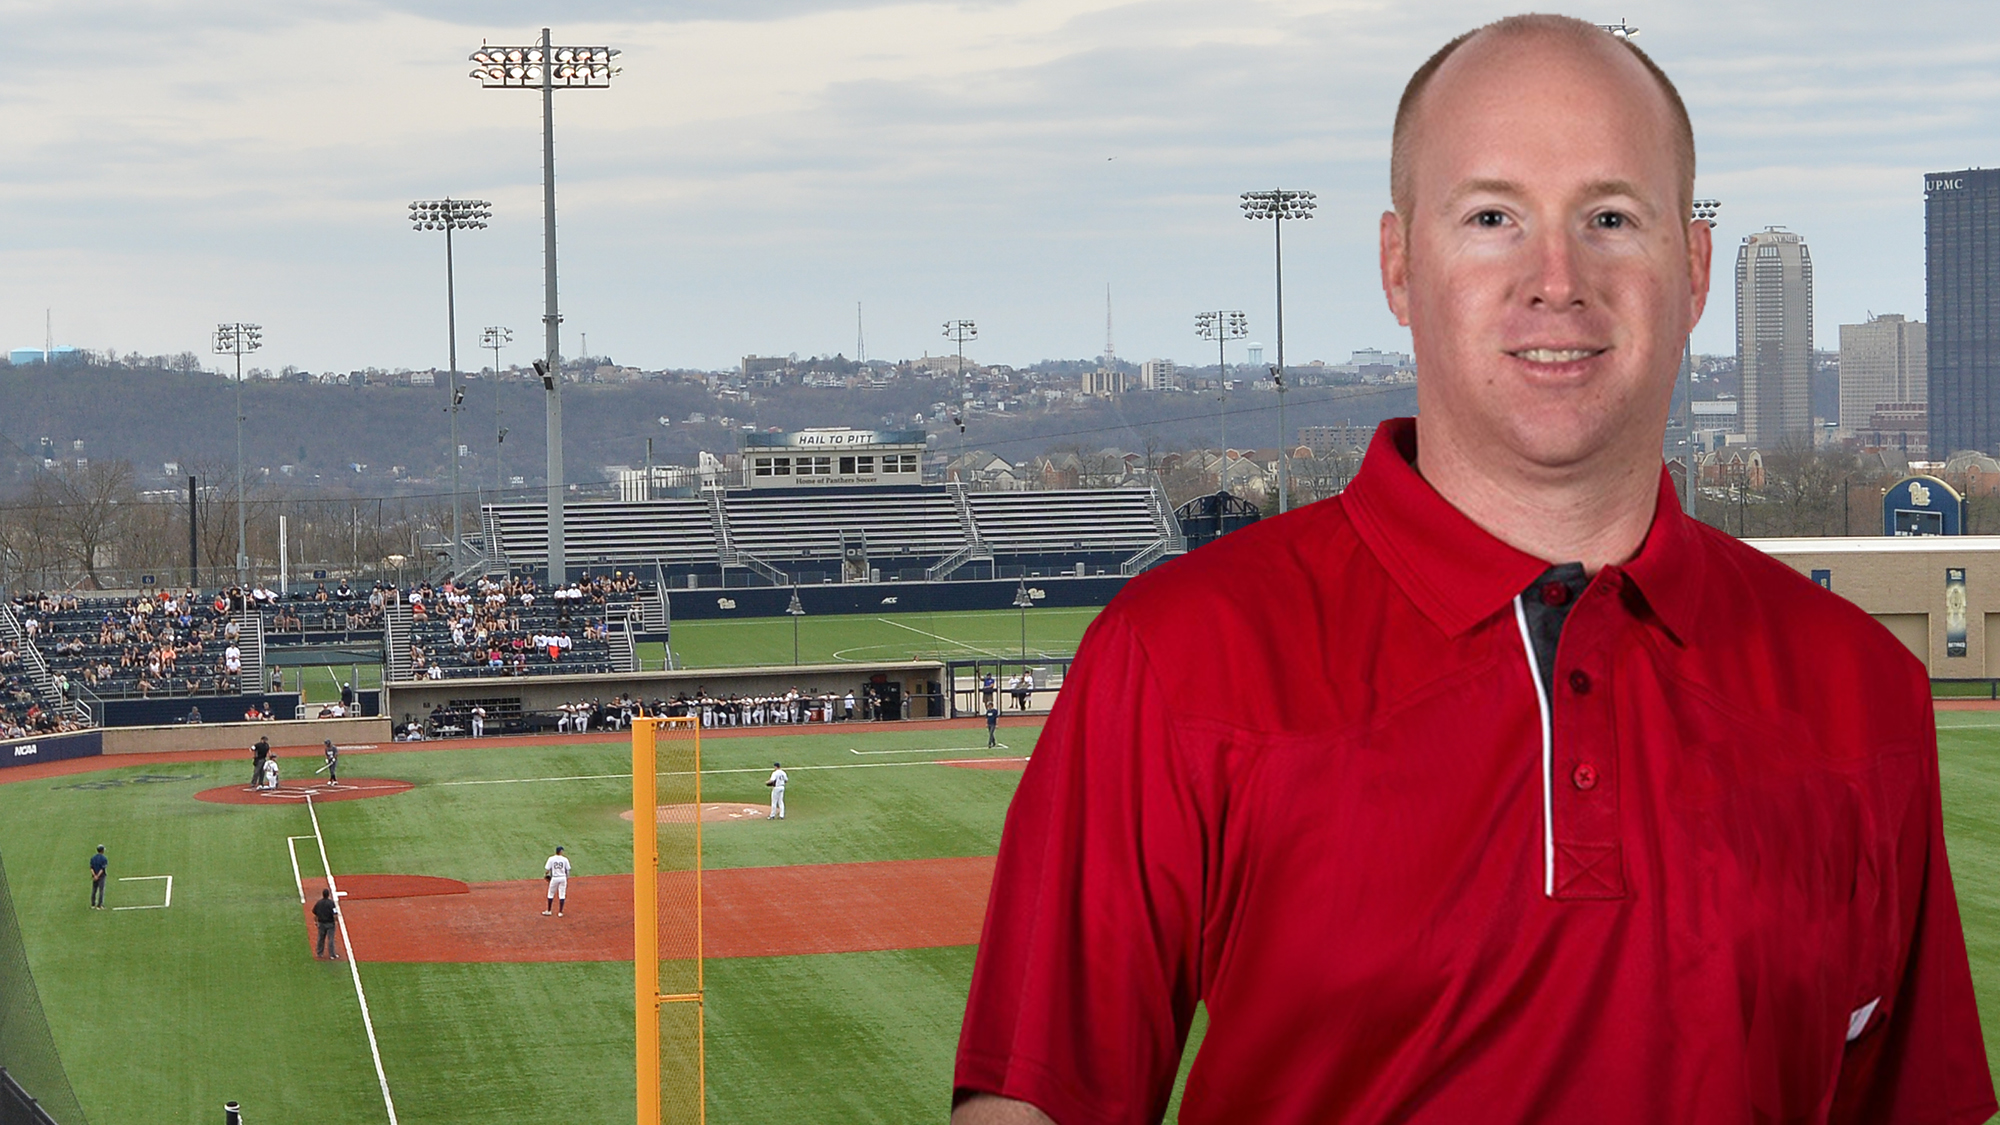 Megahee Joins Baseball Staff as Assistant Coach, Recruiting